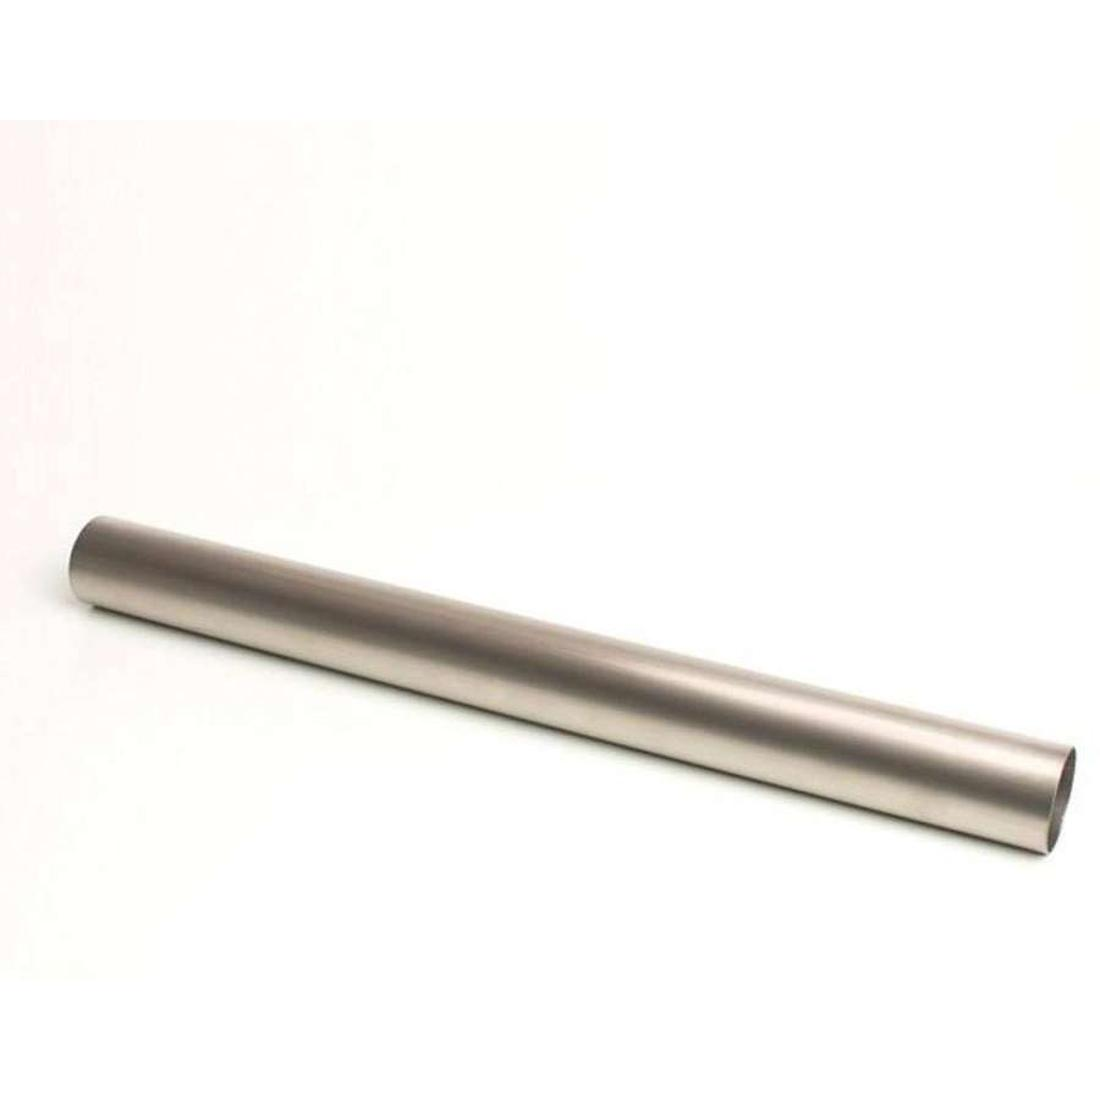 "1 Metre Length 1 3/4"" Exhaust Pipe Tube image"